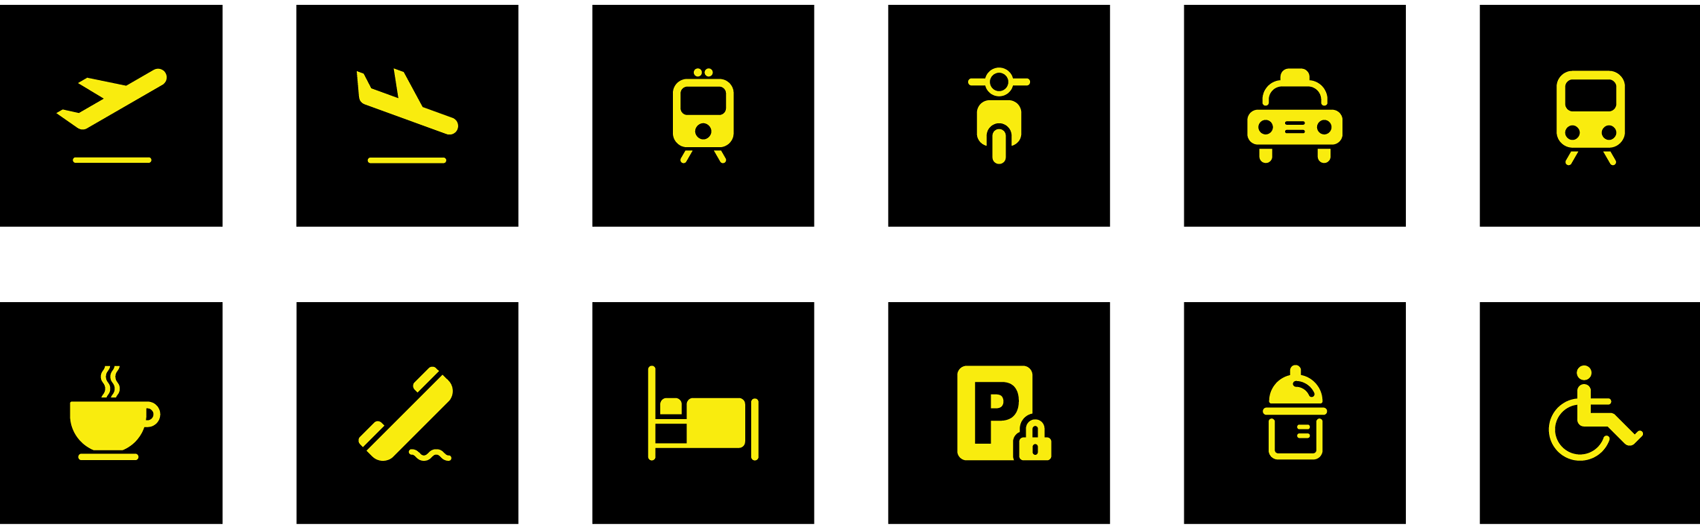 icon set with international airport symbols and pictograms